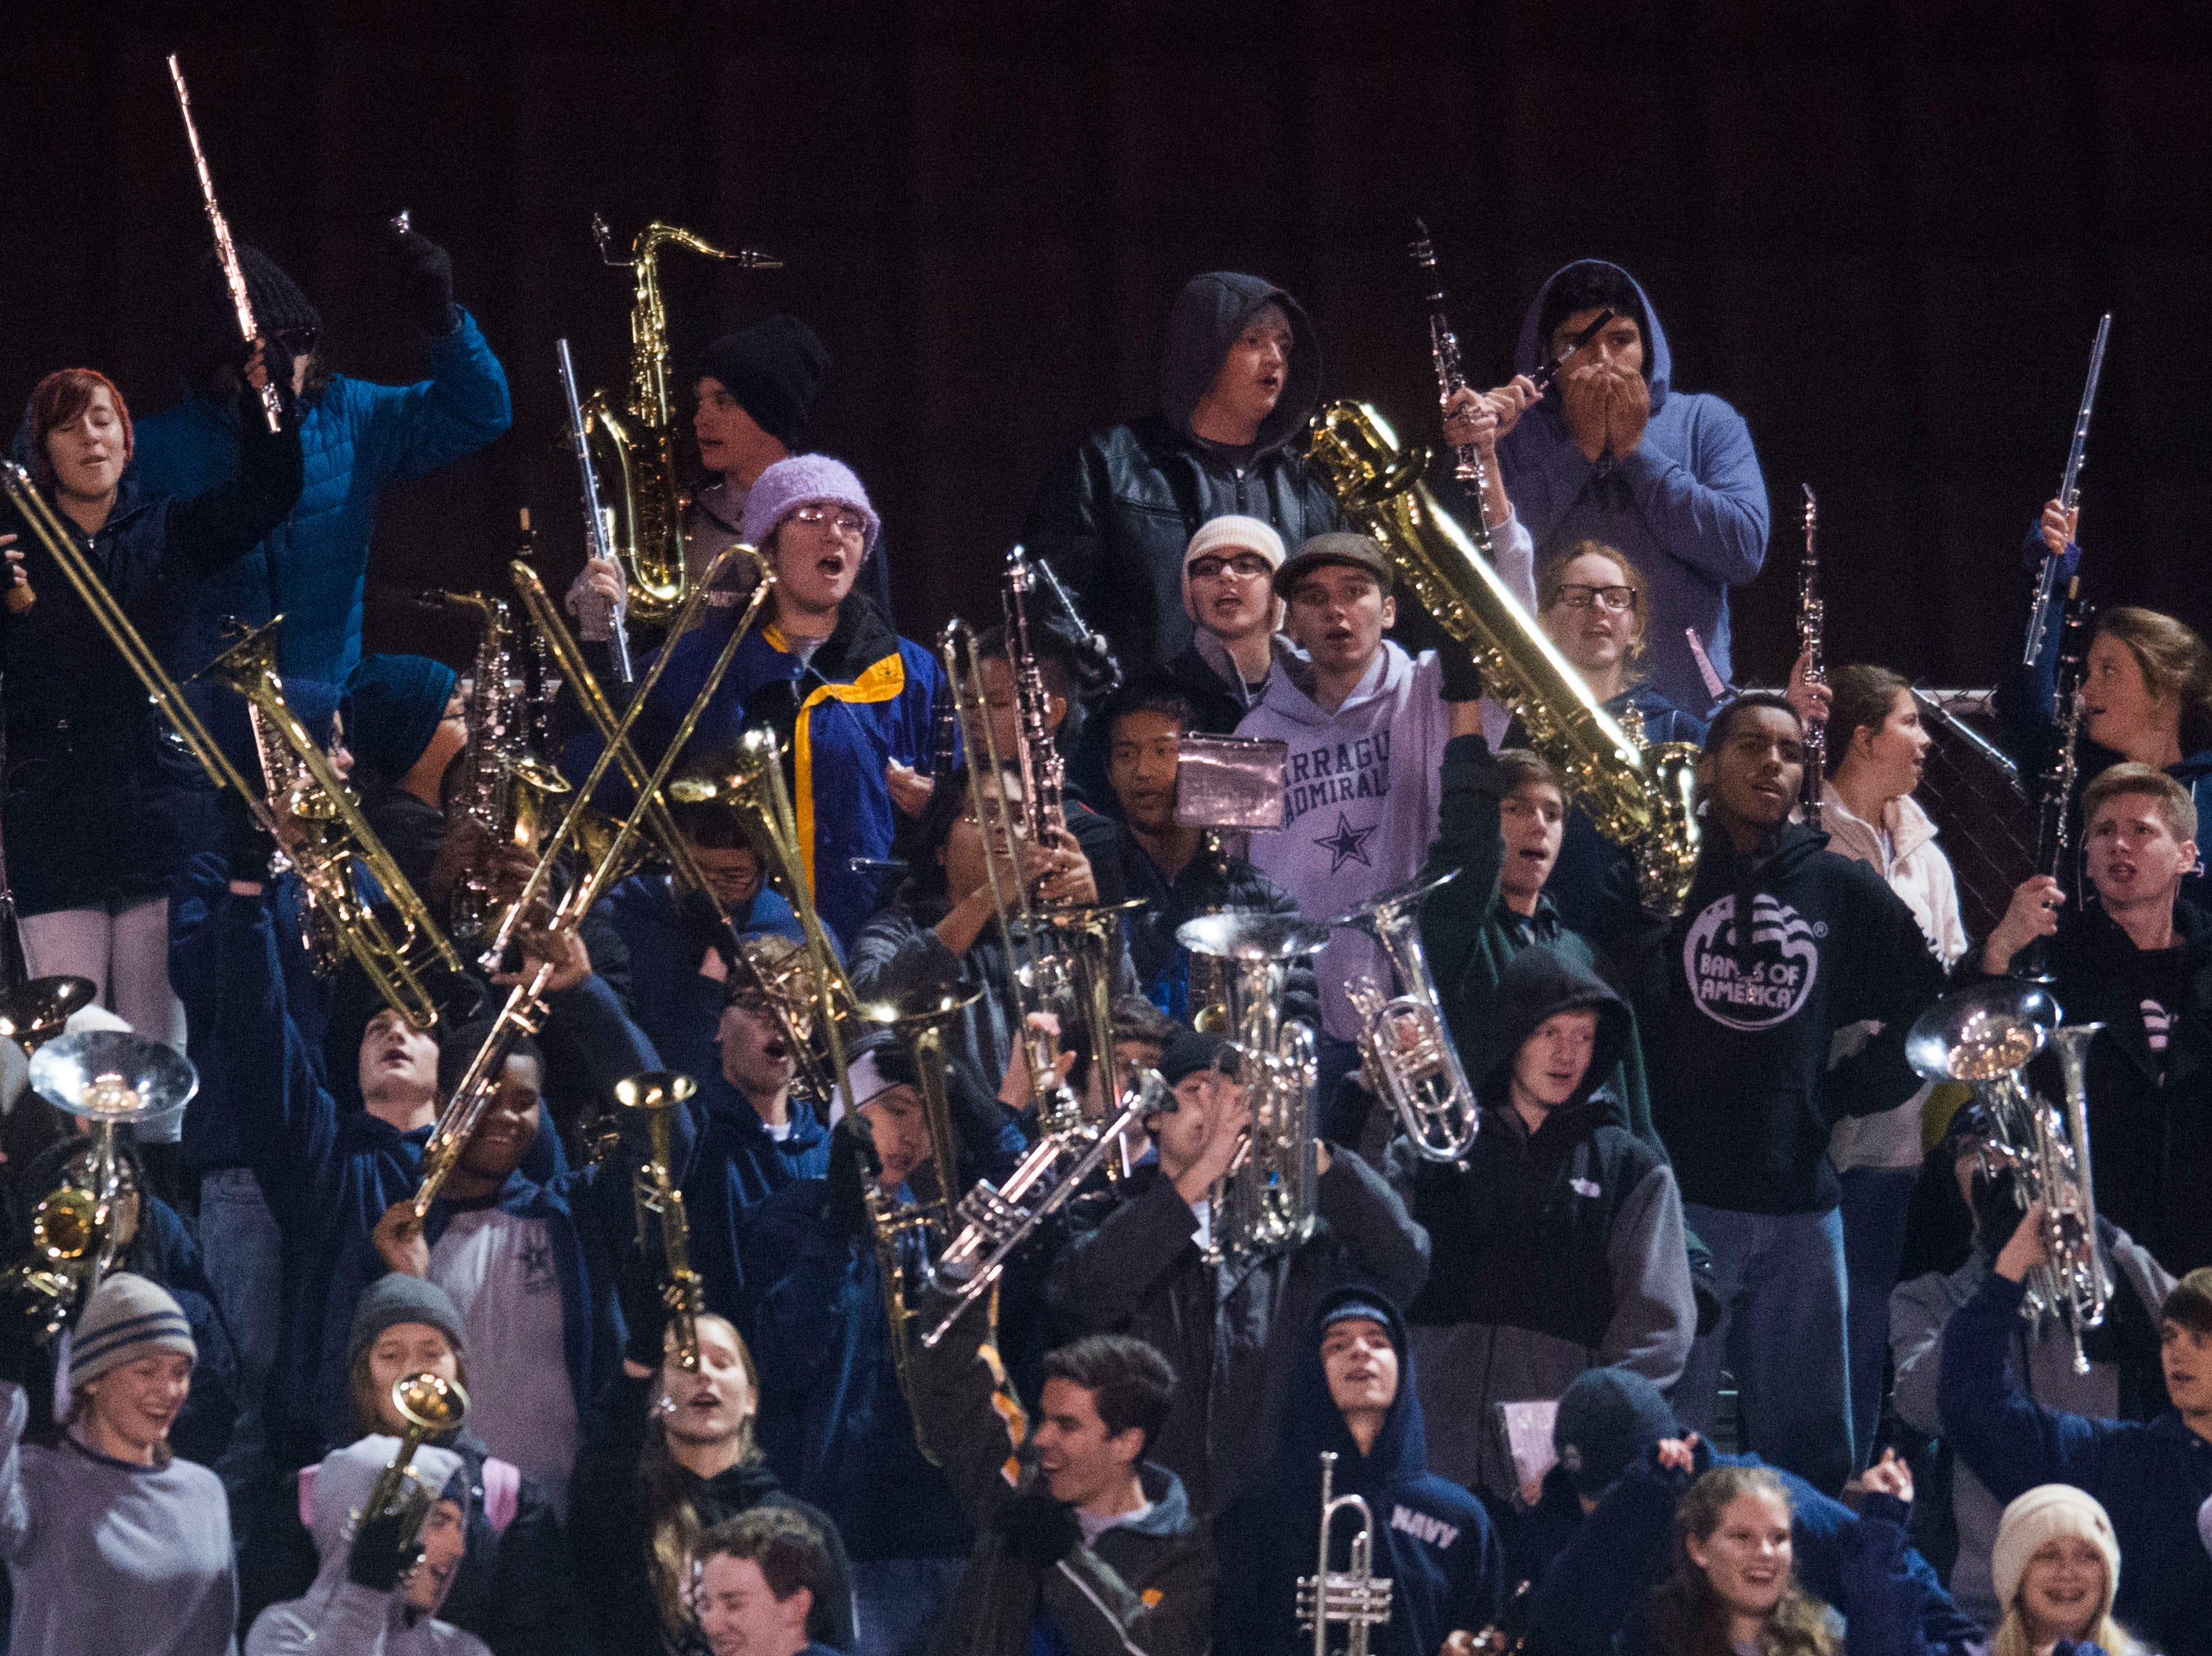 Farragut's band cheers during a 6A quarterfinal game between Maryville and Farragut at Maryville Friday, Nov. 16, 2018. Maryville defeated Farragut 26-10.